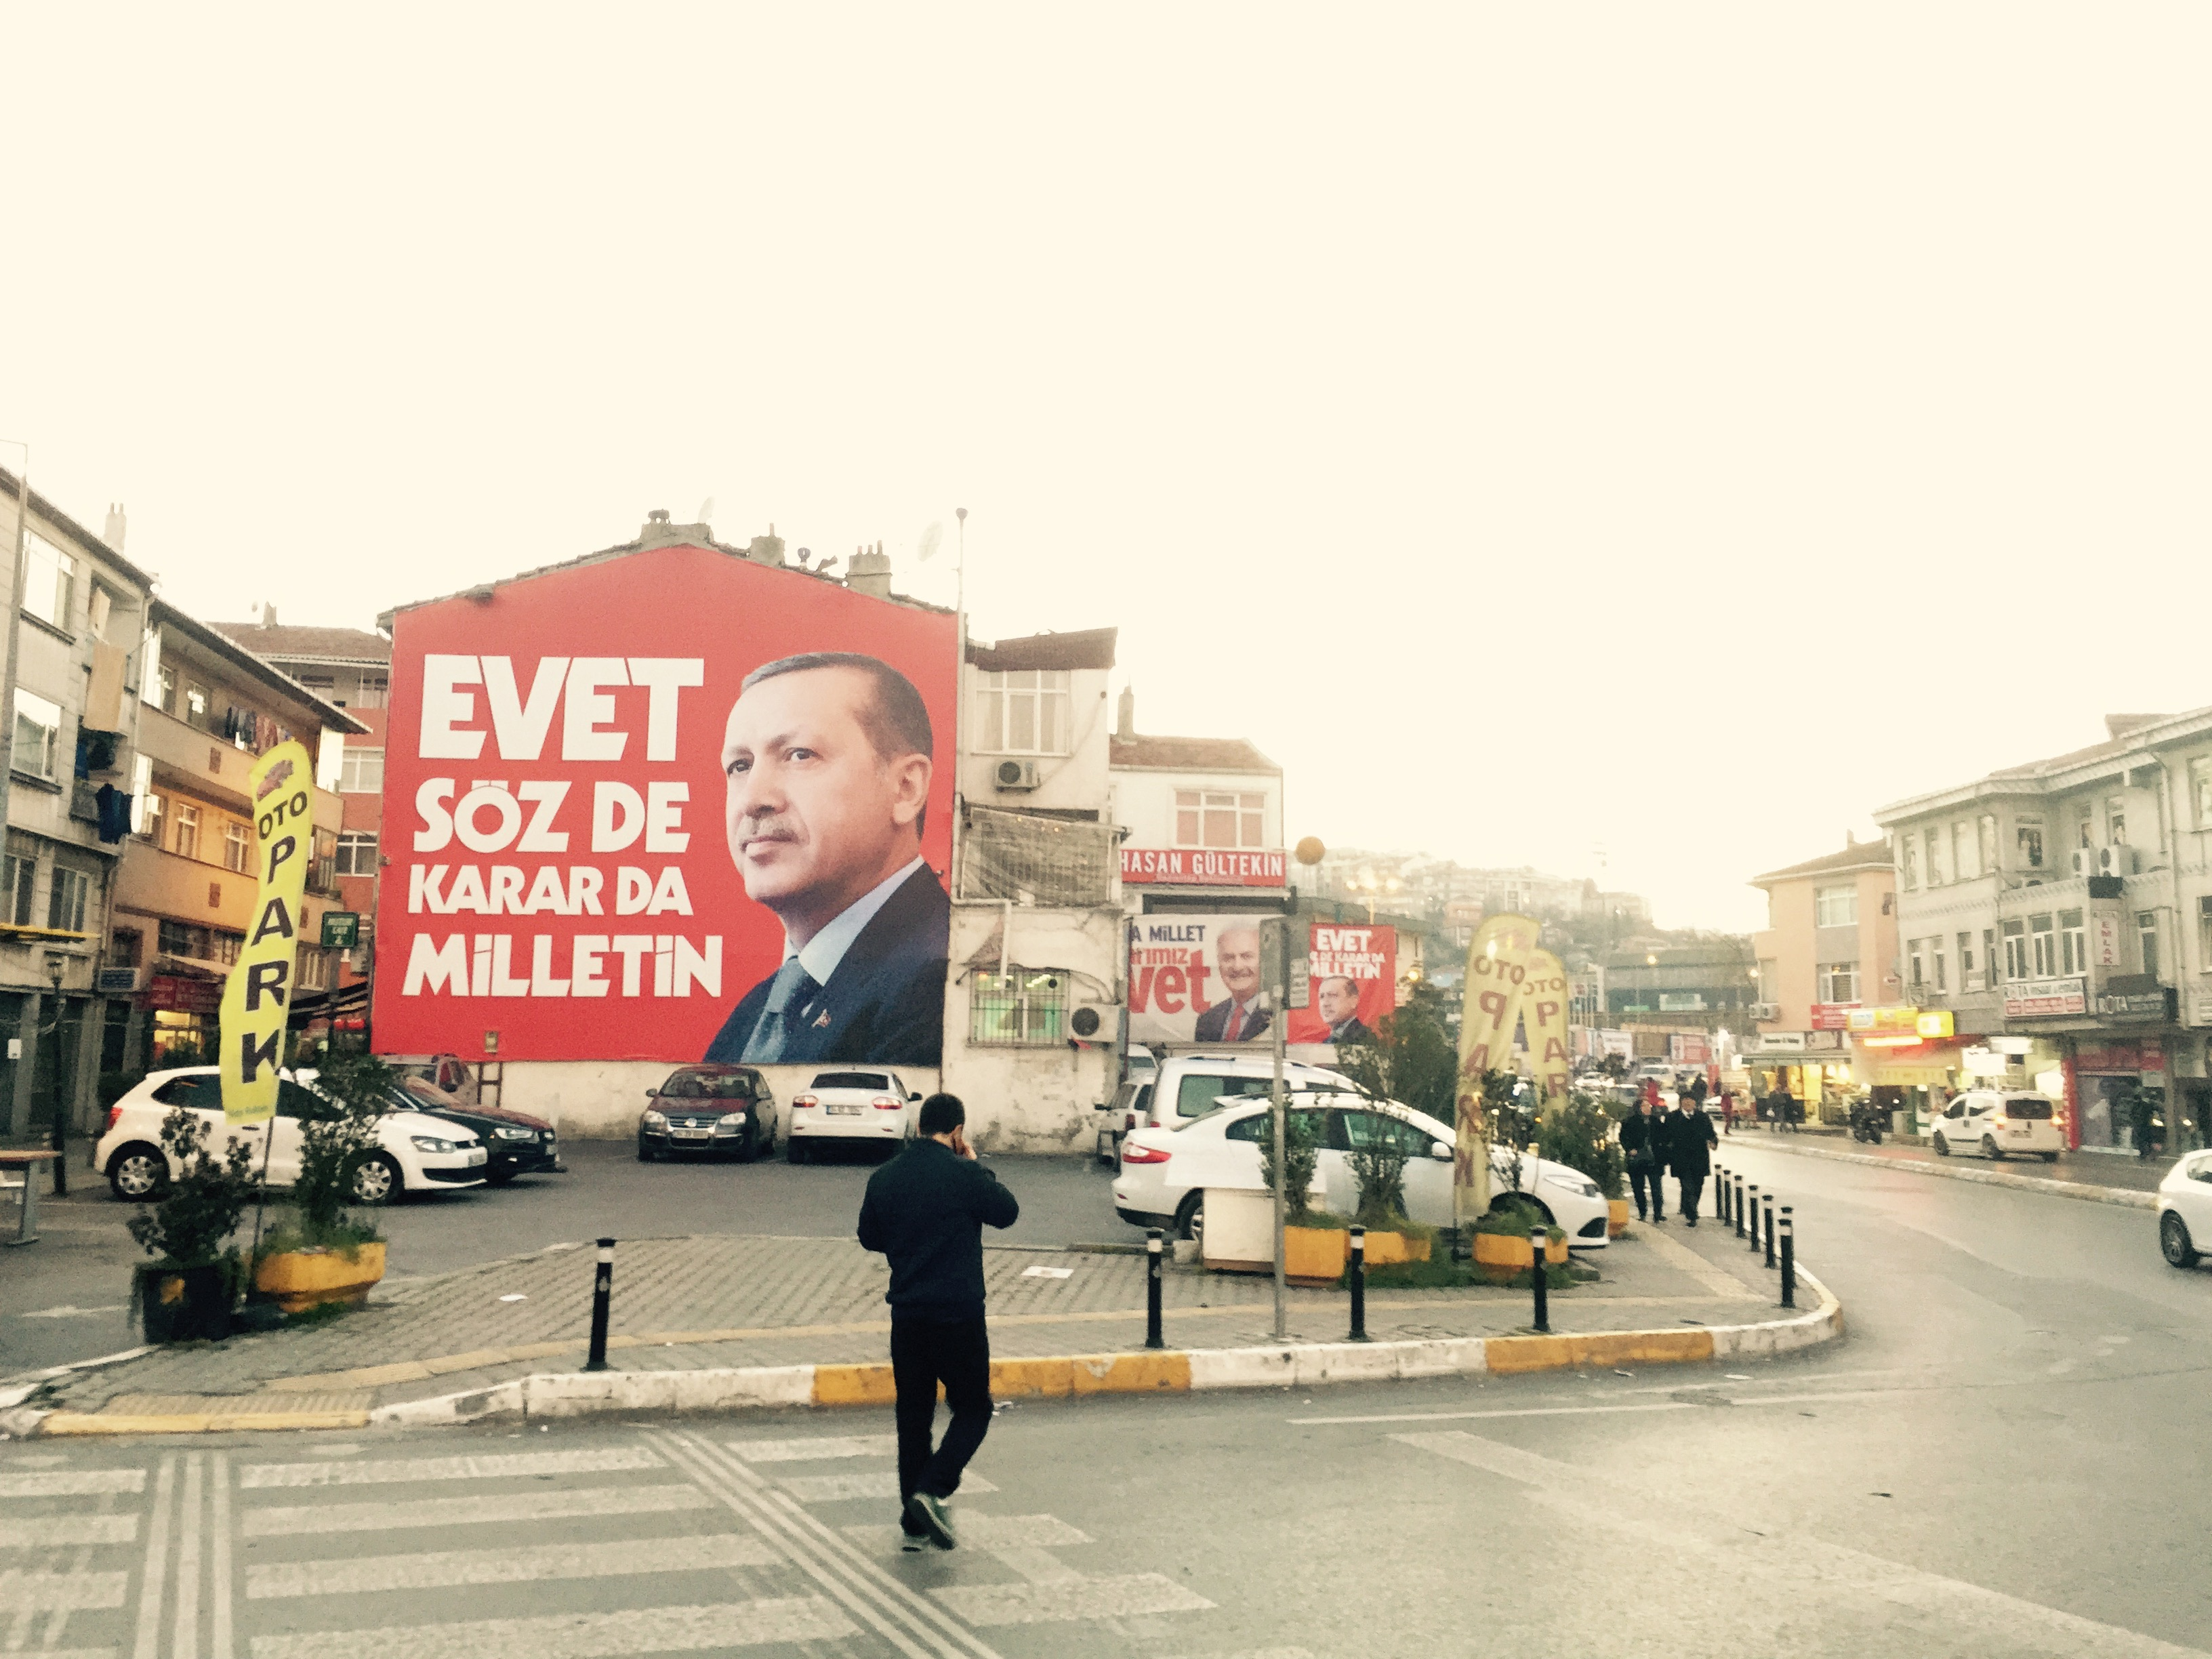 Final day of campaigning before crucial Turkey referendum